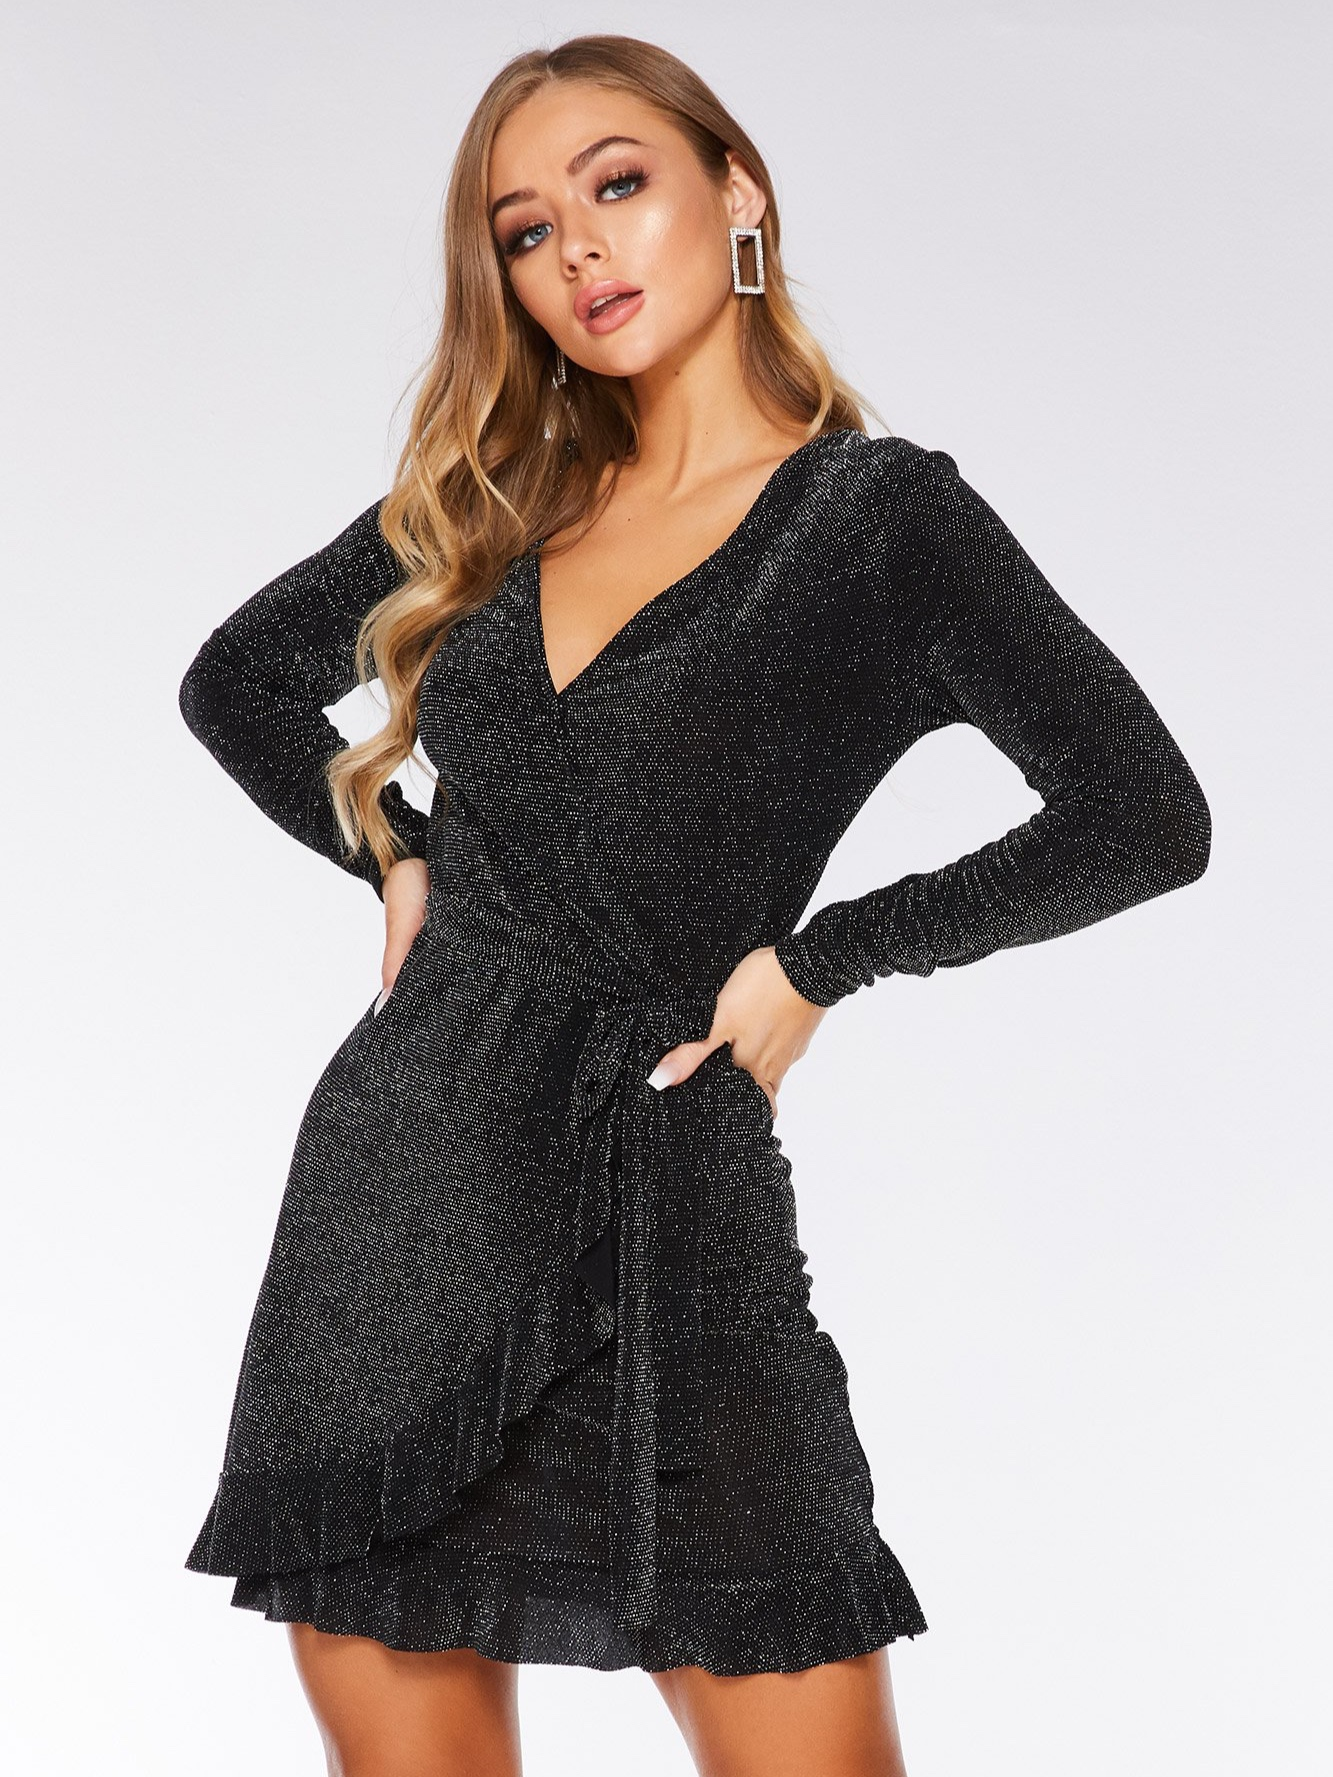 Black and Silver Glitter Wrap Dress (£29.99)